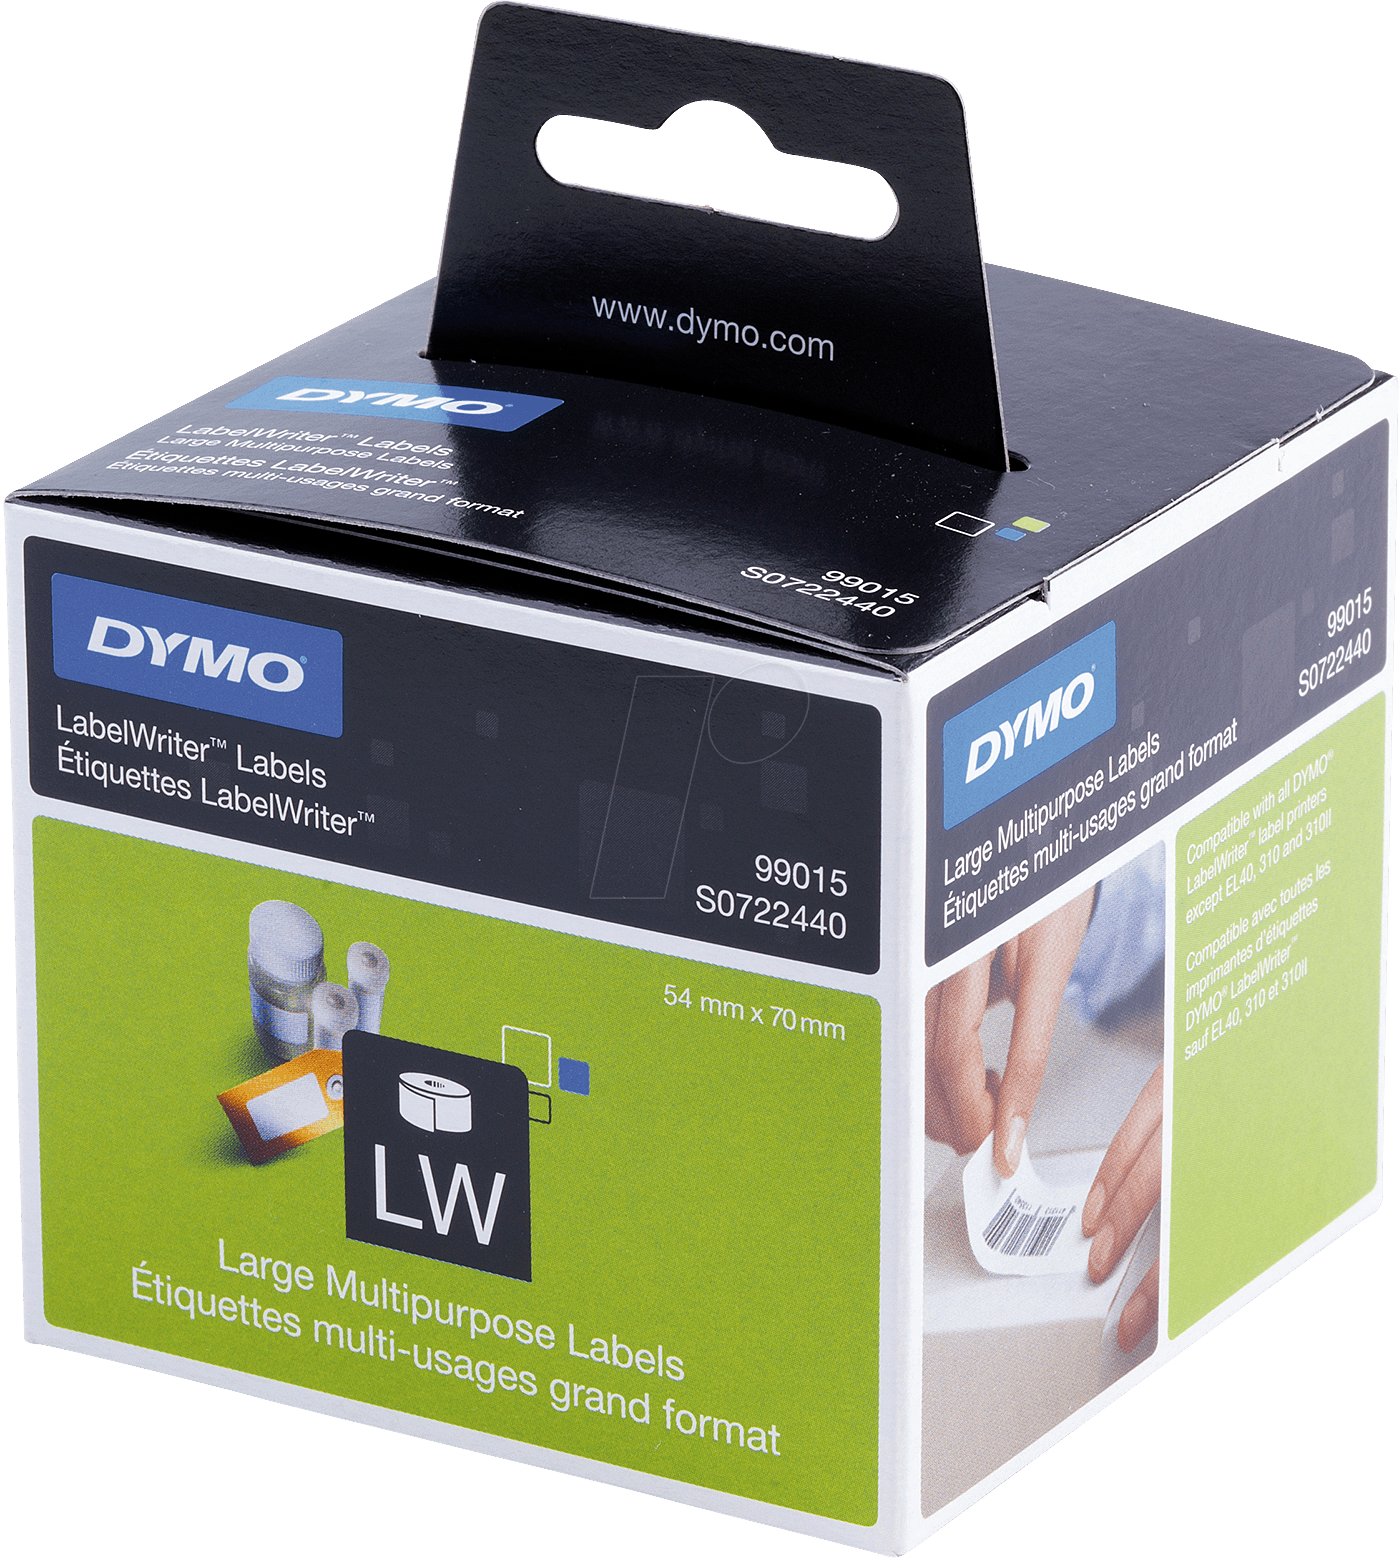 Dymo lw 99015 dymo labels for labelwriter 56 x 70 mm at for Dymo label stickers